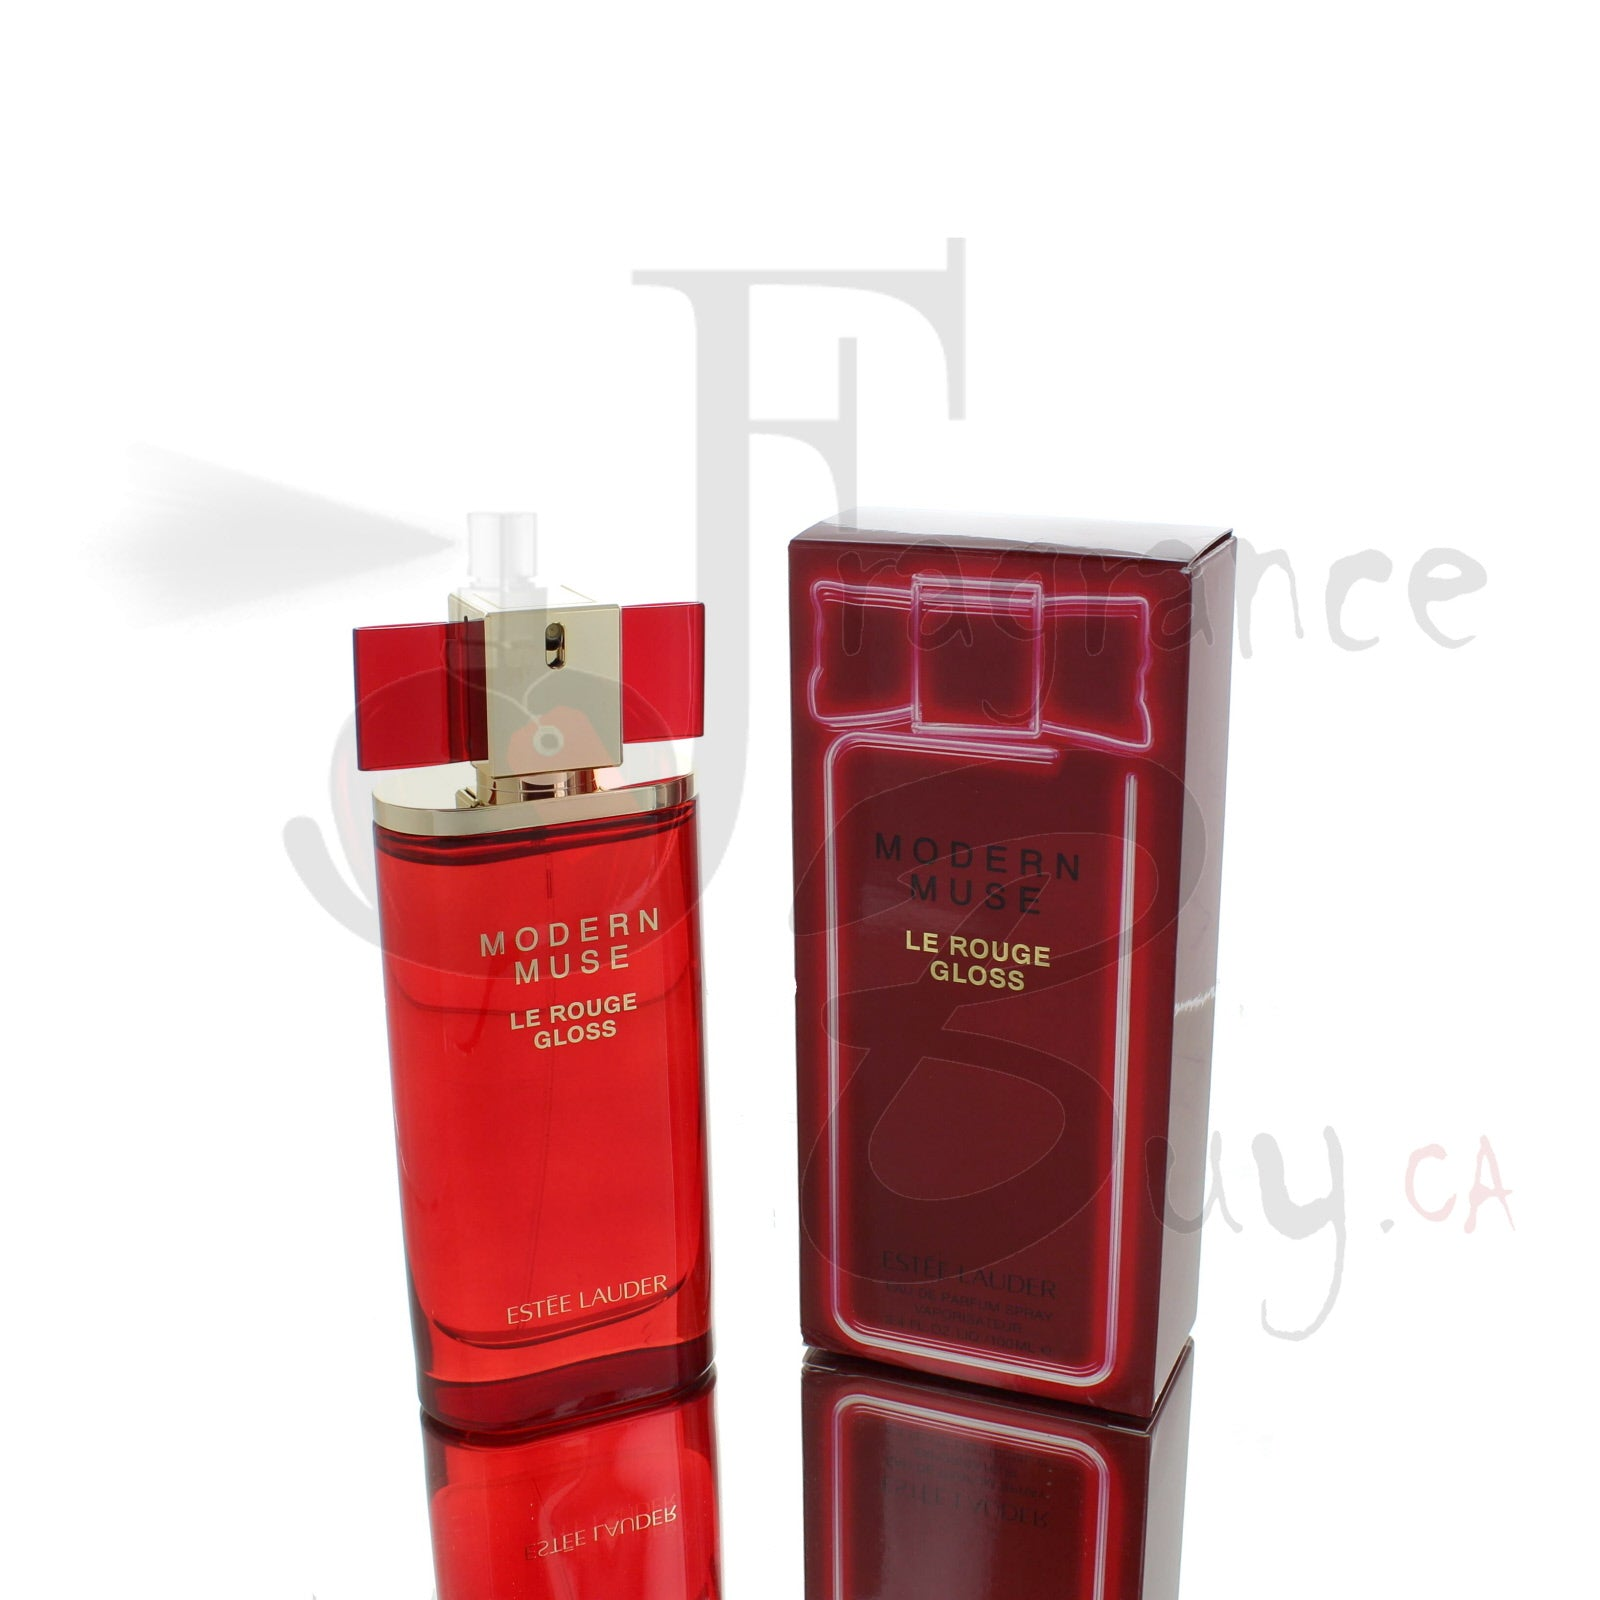 Estee Lauder Modern Muse Le Rouge Gloss Edition For Woman